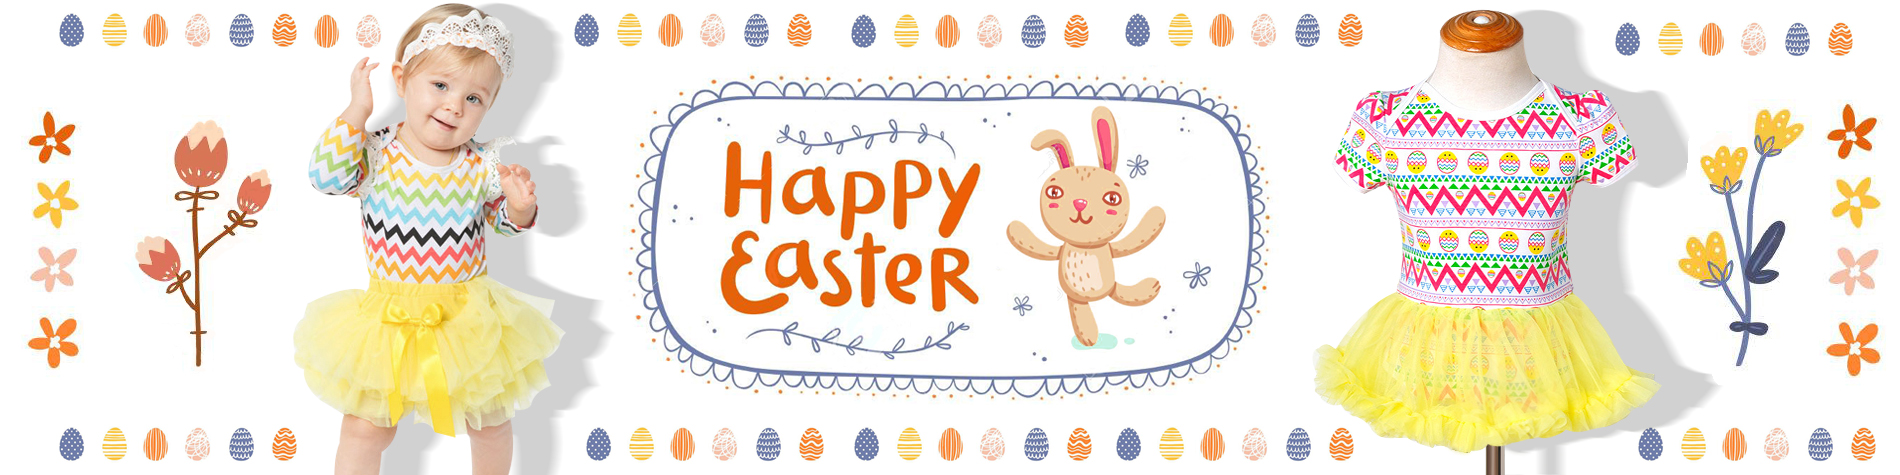 wholesale baby rompers easter holiday